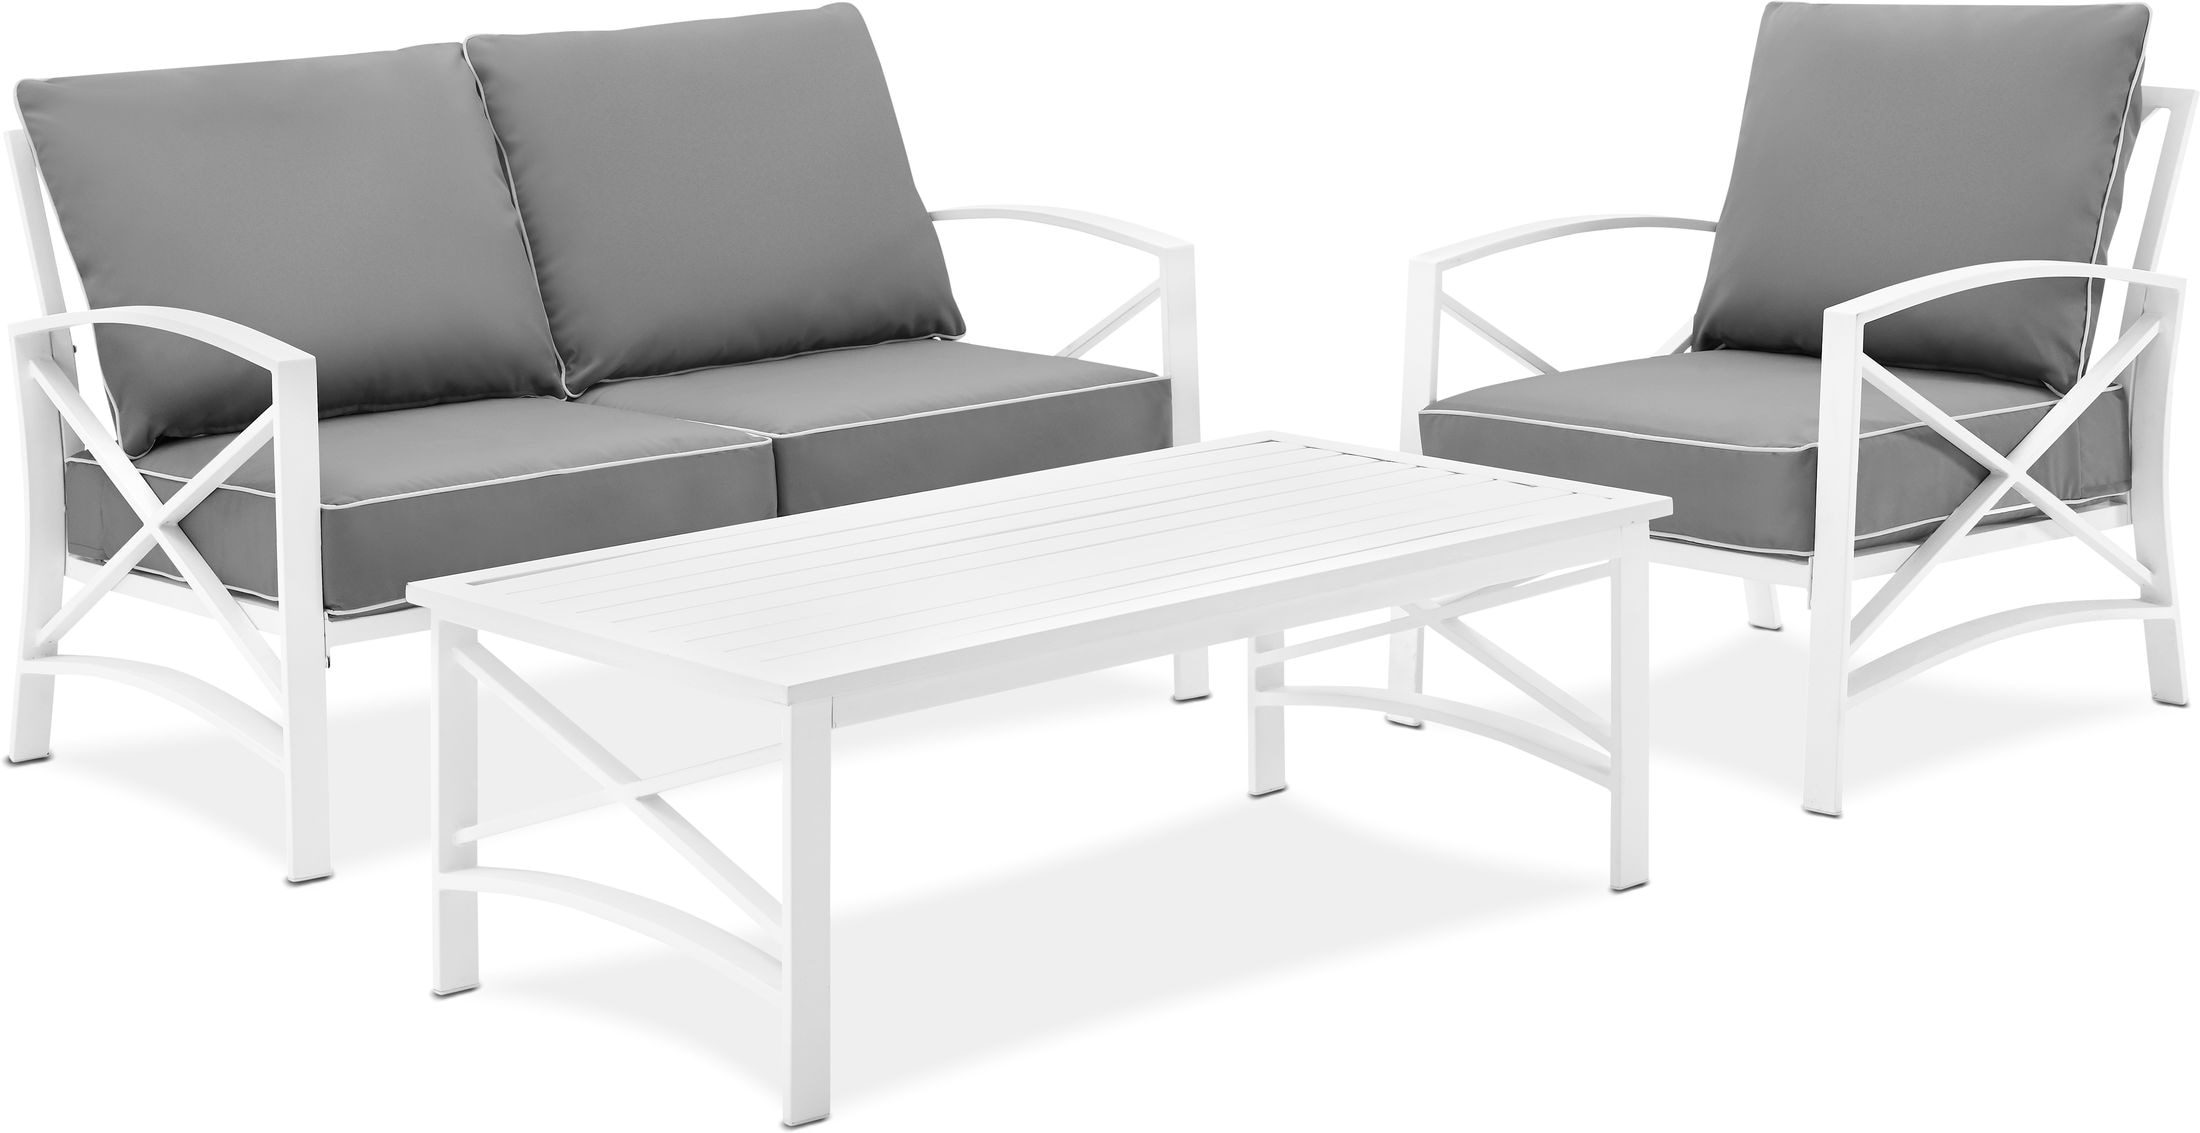 Outdoor Furniture - Clarion Outdoor Loveseat, Chair, and Coffee Table Set